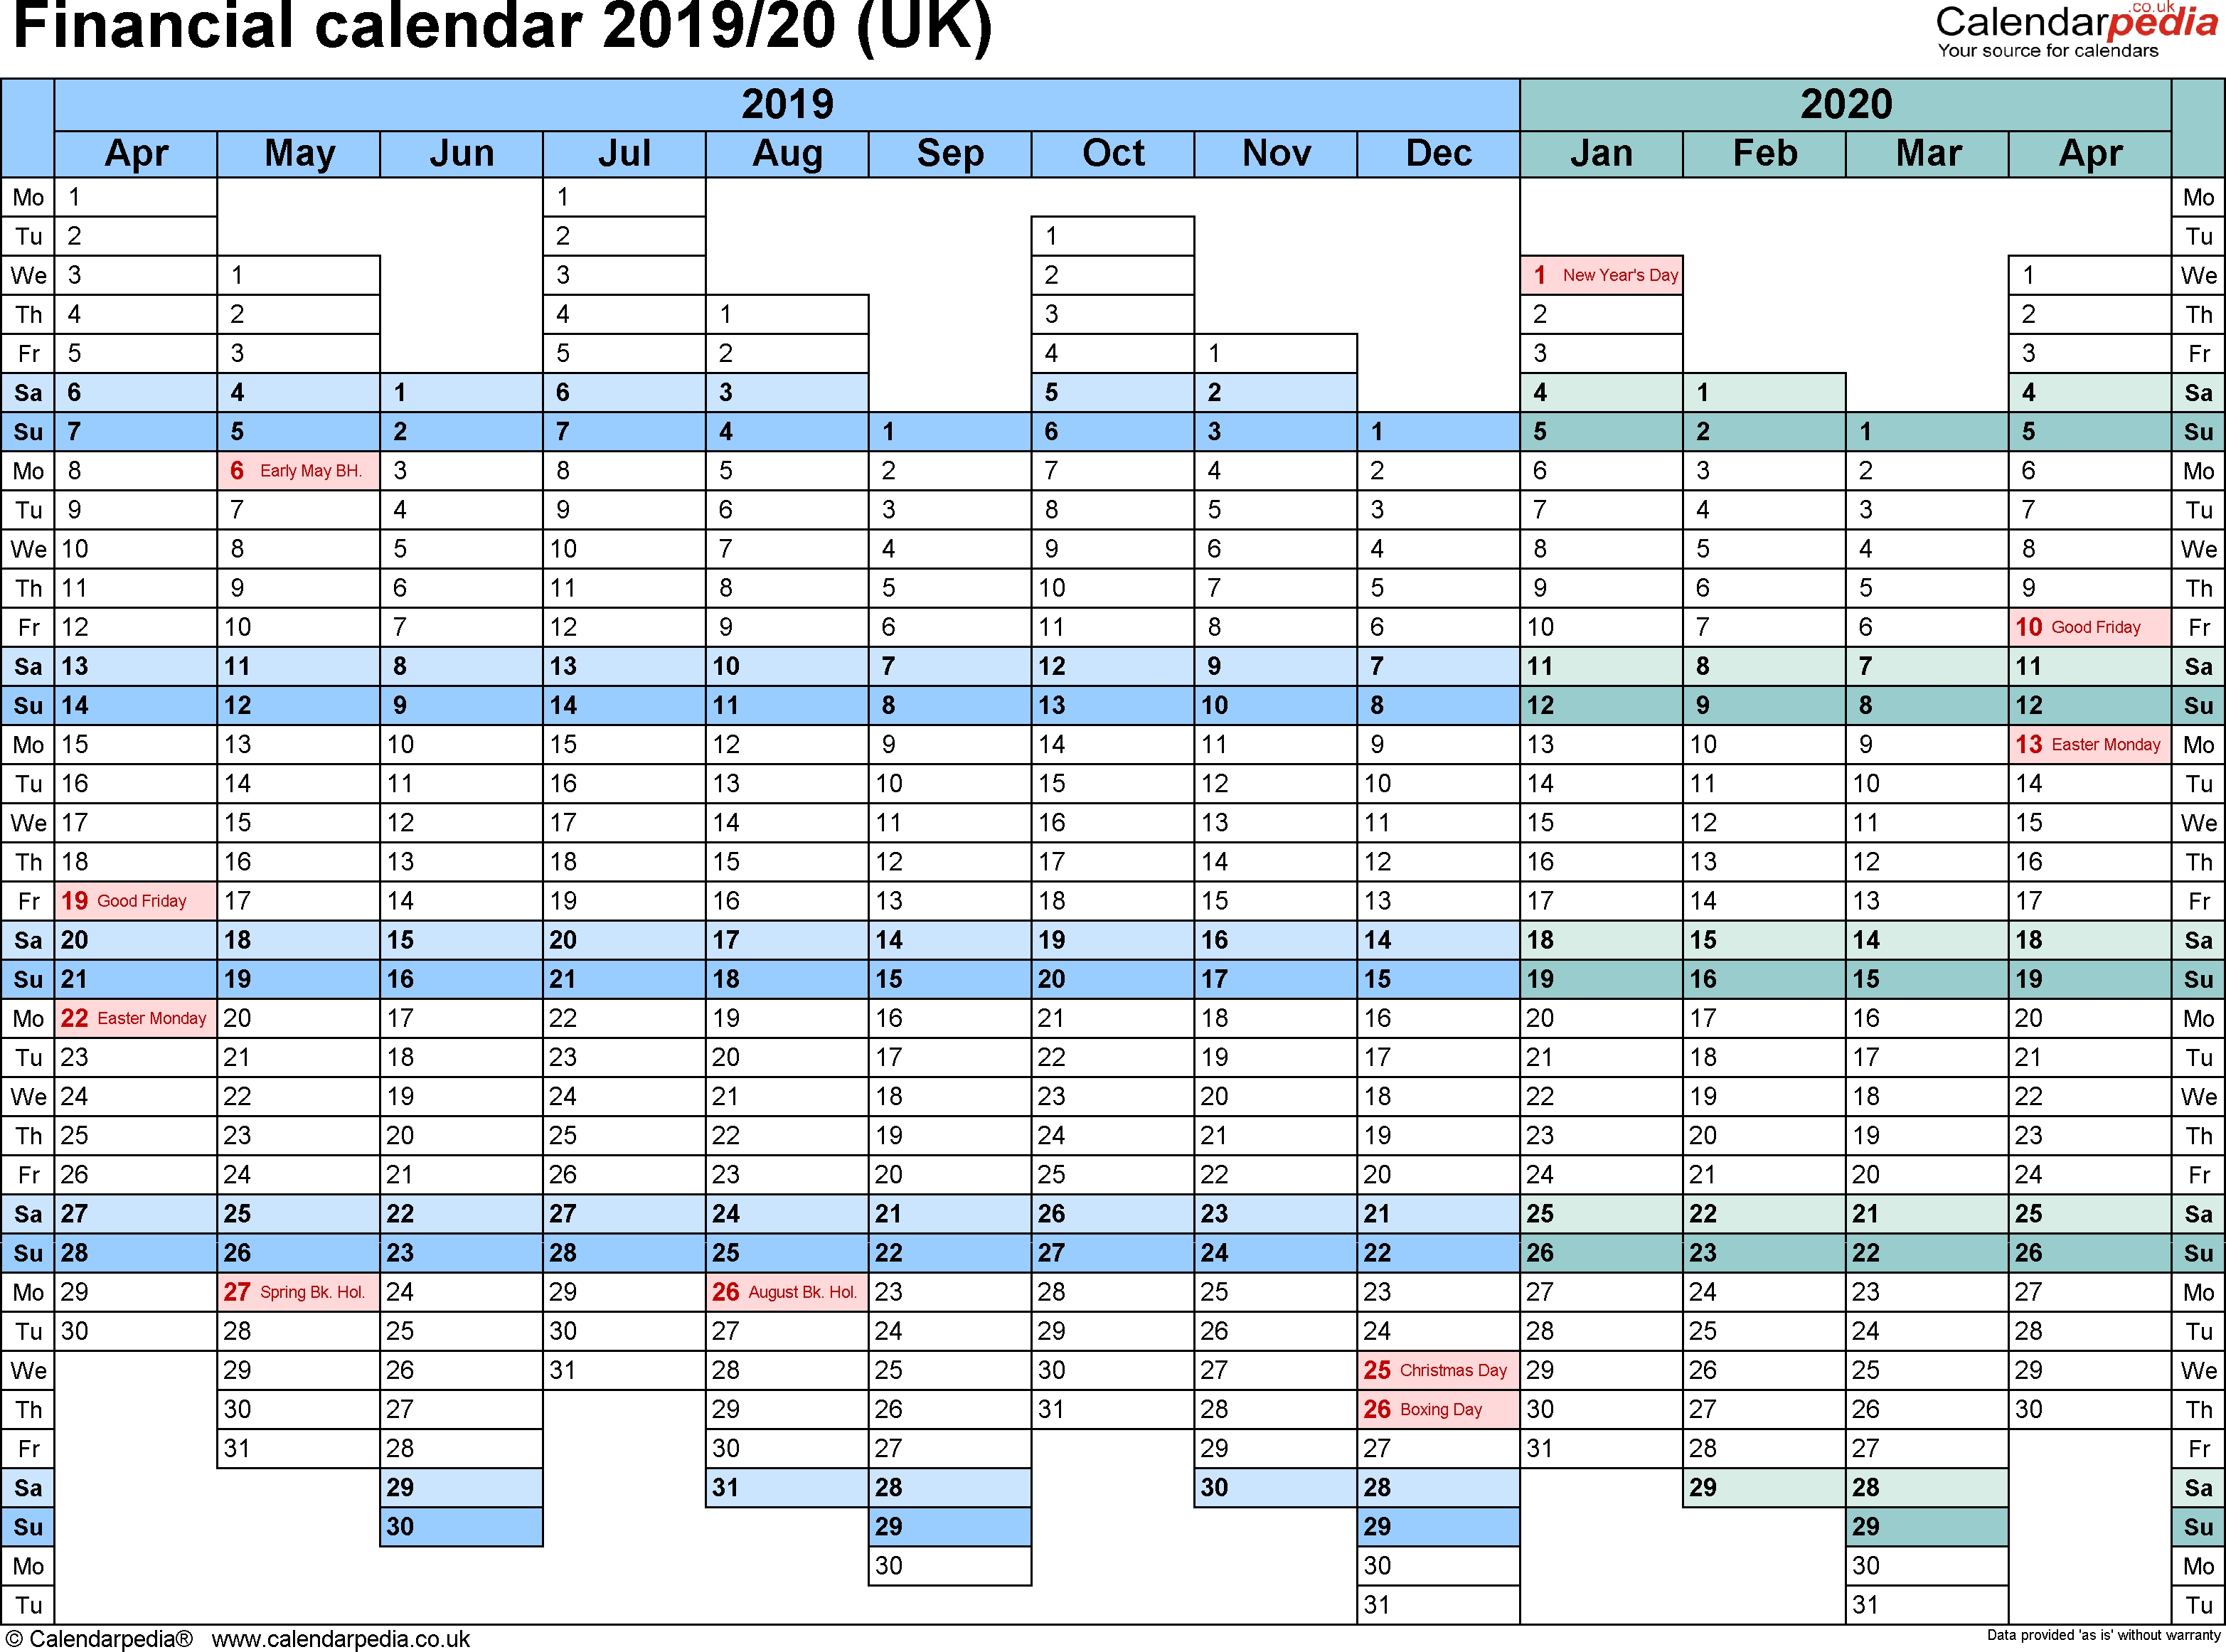 Financial Calendars 2019/20 (Uk) In Pdf Format pertaining to Tax Week Calendars 2019/2020